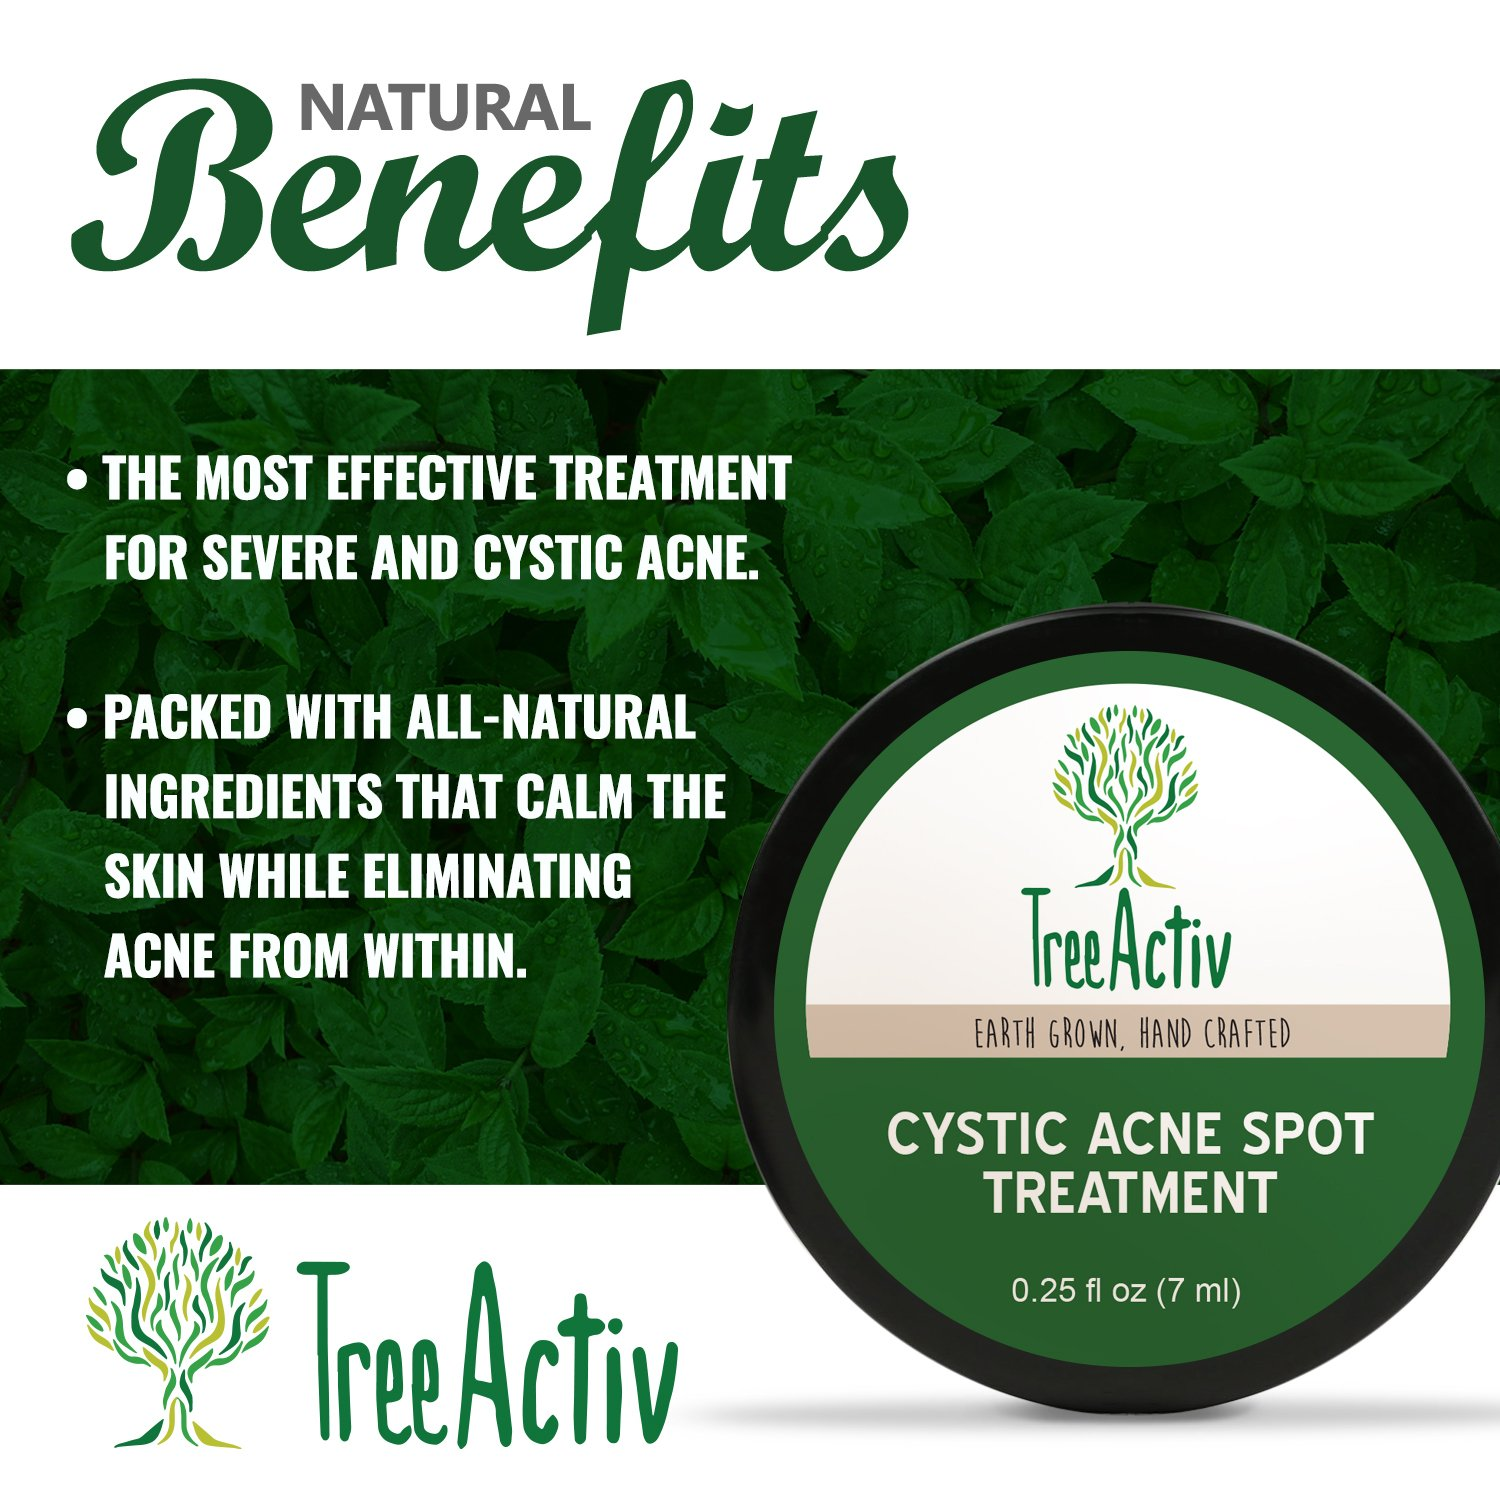 TreeActiv Cystic Acne Spot Treatment, Best Extra Strength Fast Acting Formula for Clearing Severe Acne from Face and Body, Gentle Enough for Sensitive Skin, Adults, Teens, Men, Women (0.25 Ounce) by TreeActiv (Image #2)